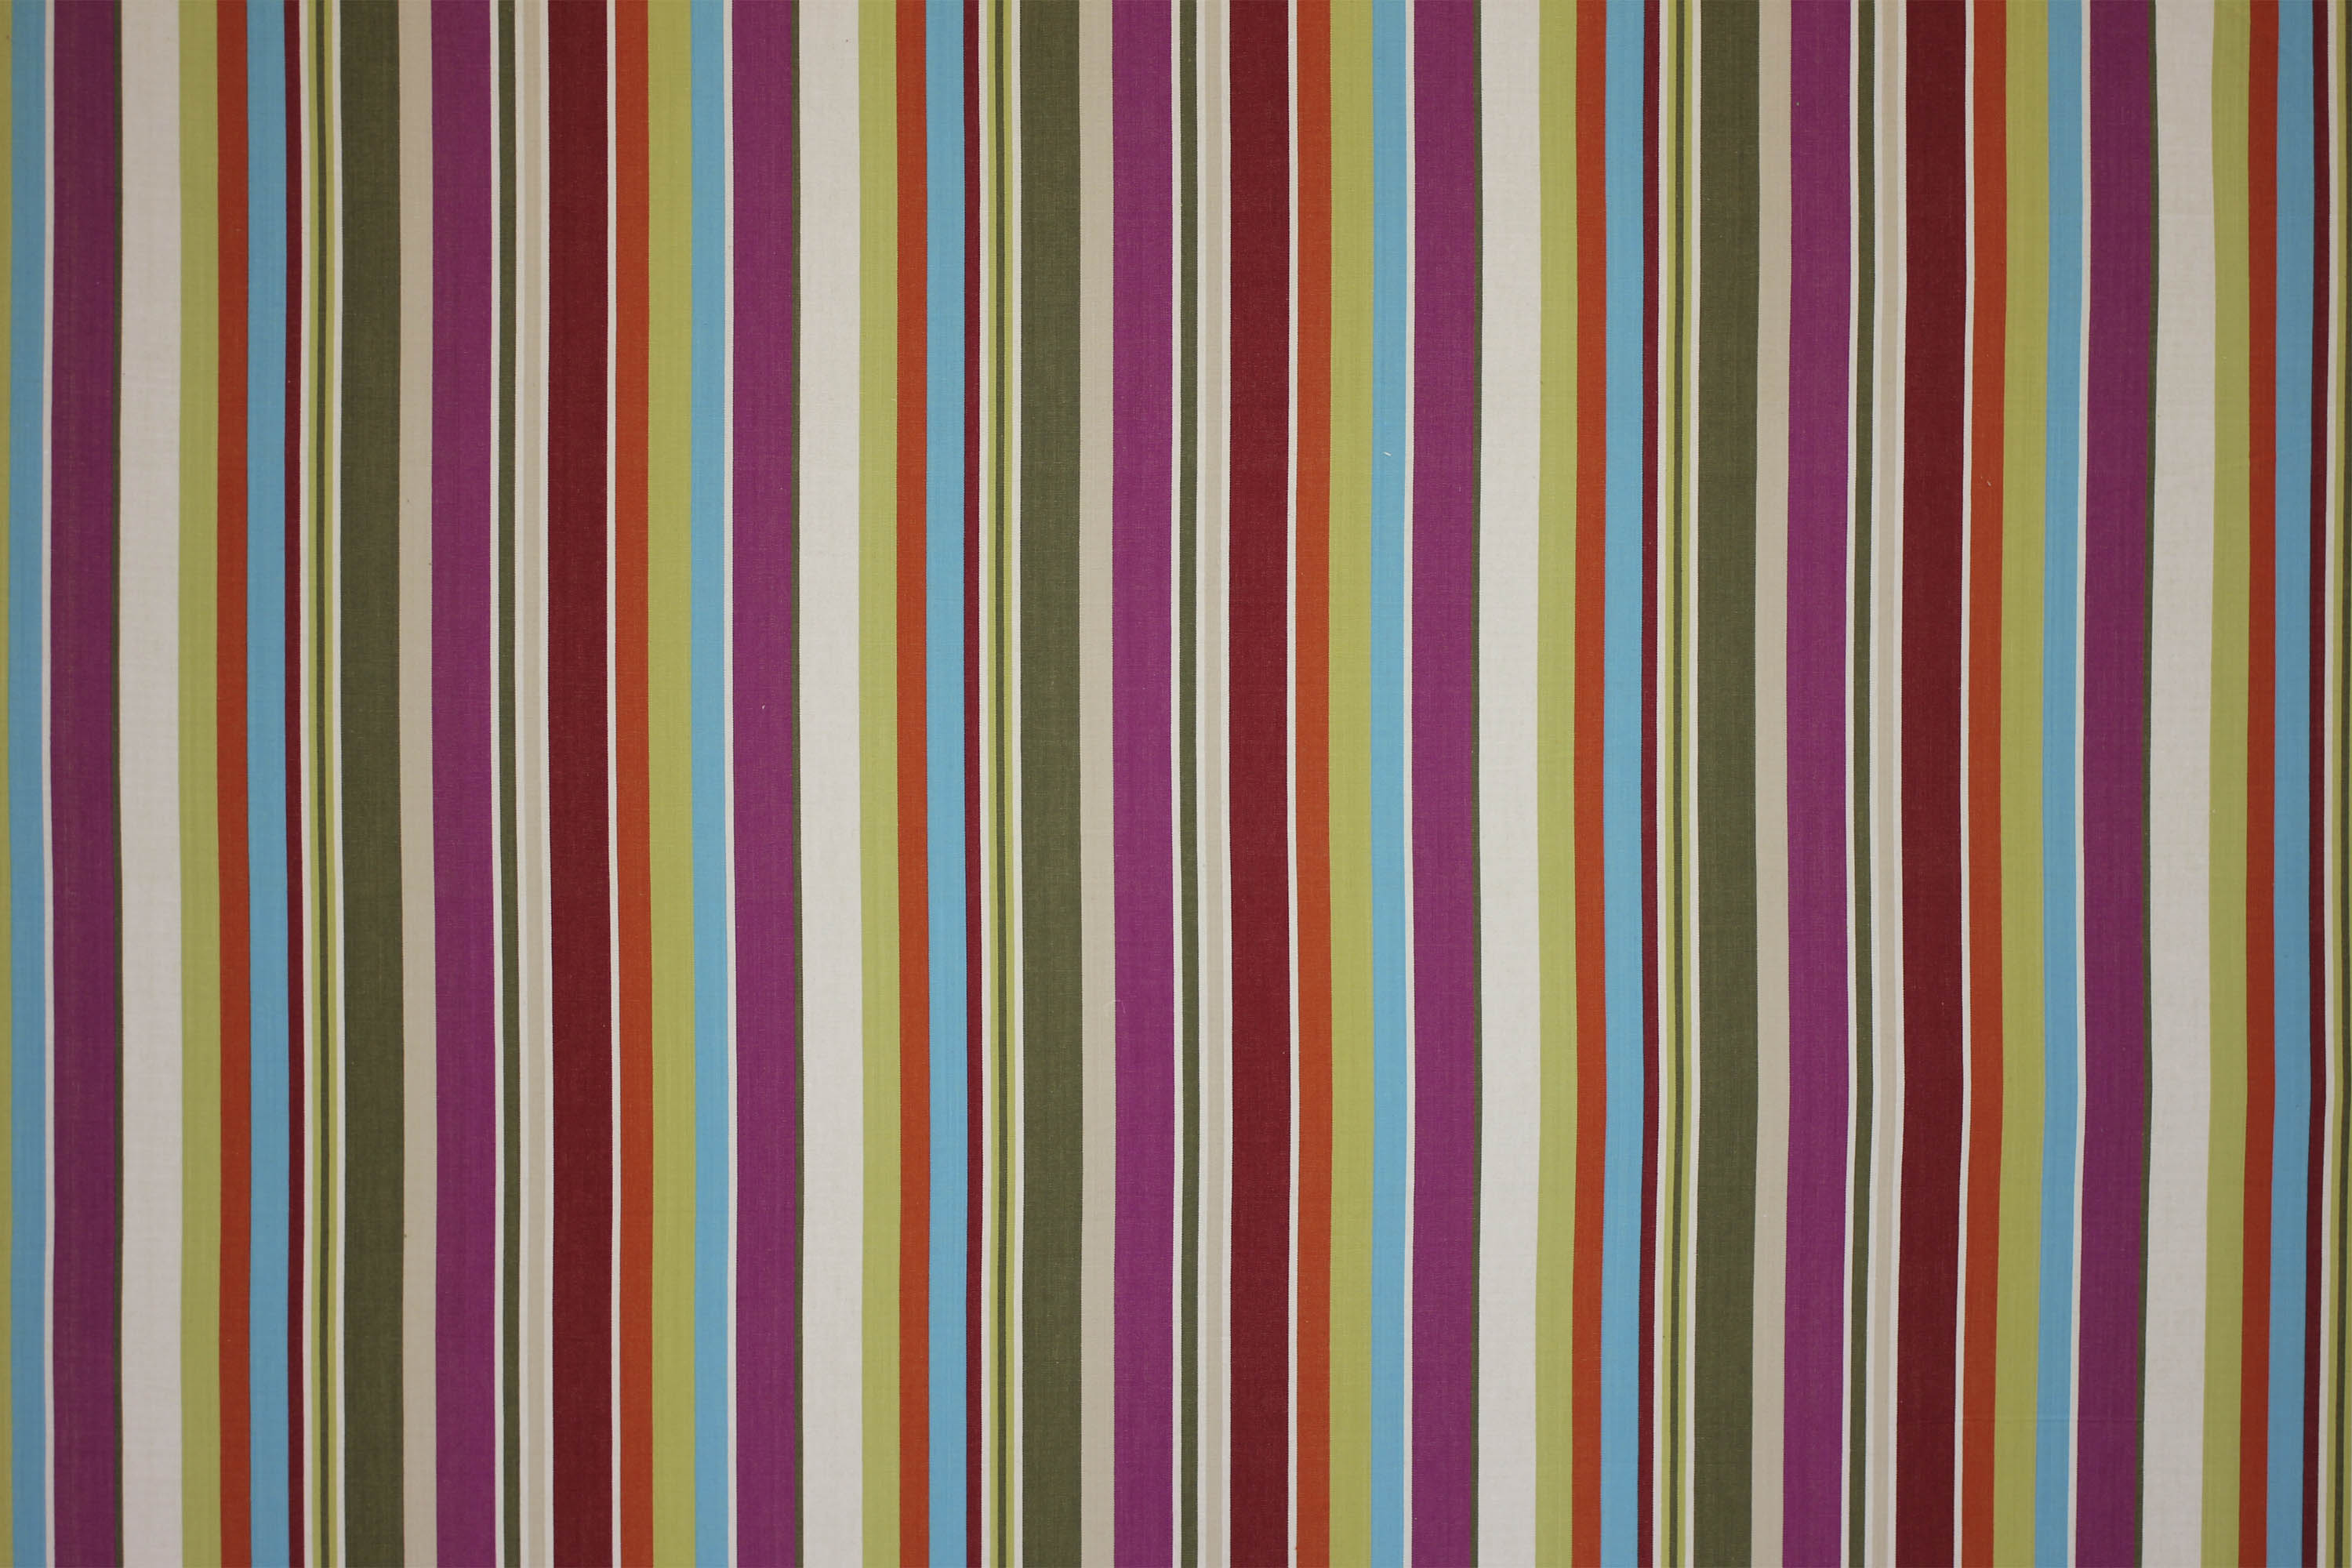 Cream Striped Fabrics | Stripe Cotton Fabrics | Striped Curtain Fabrics | Upholstery Fabrics  Dressage Stripes